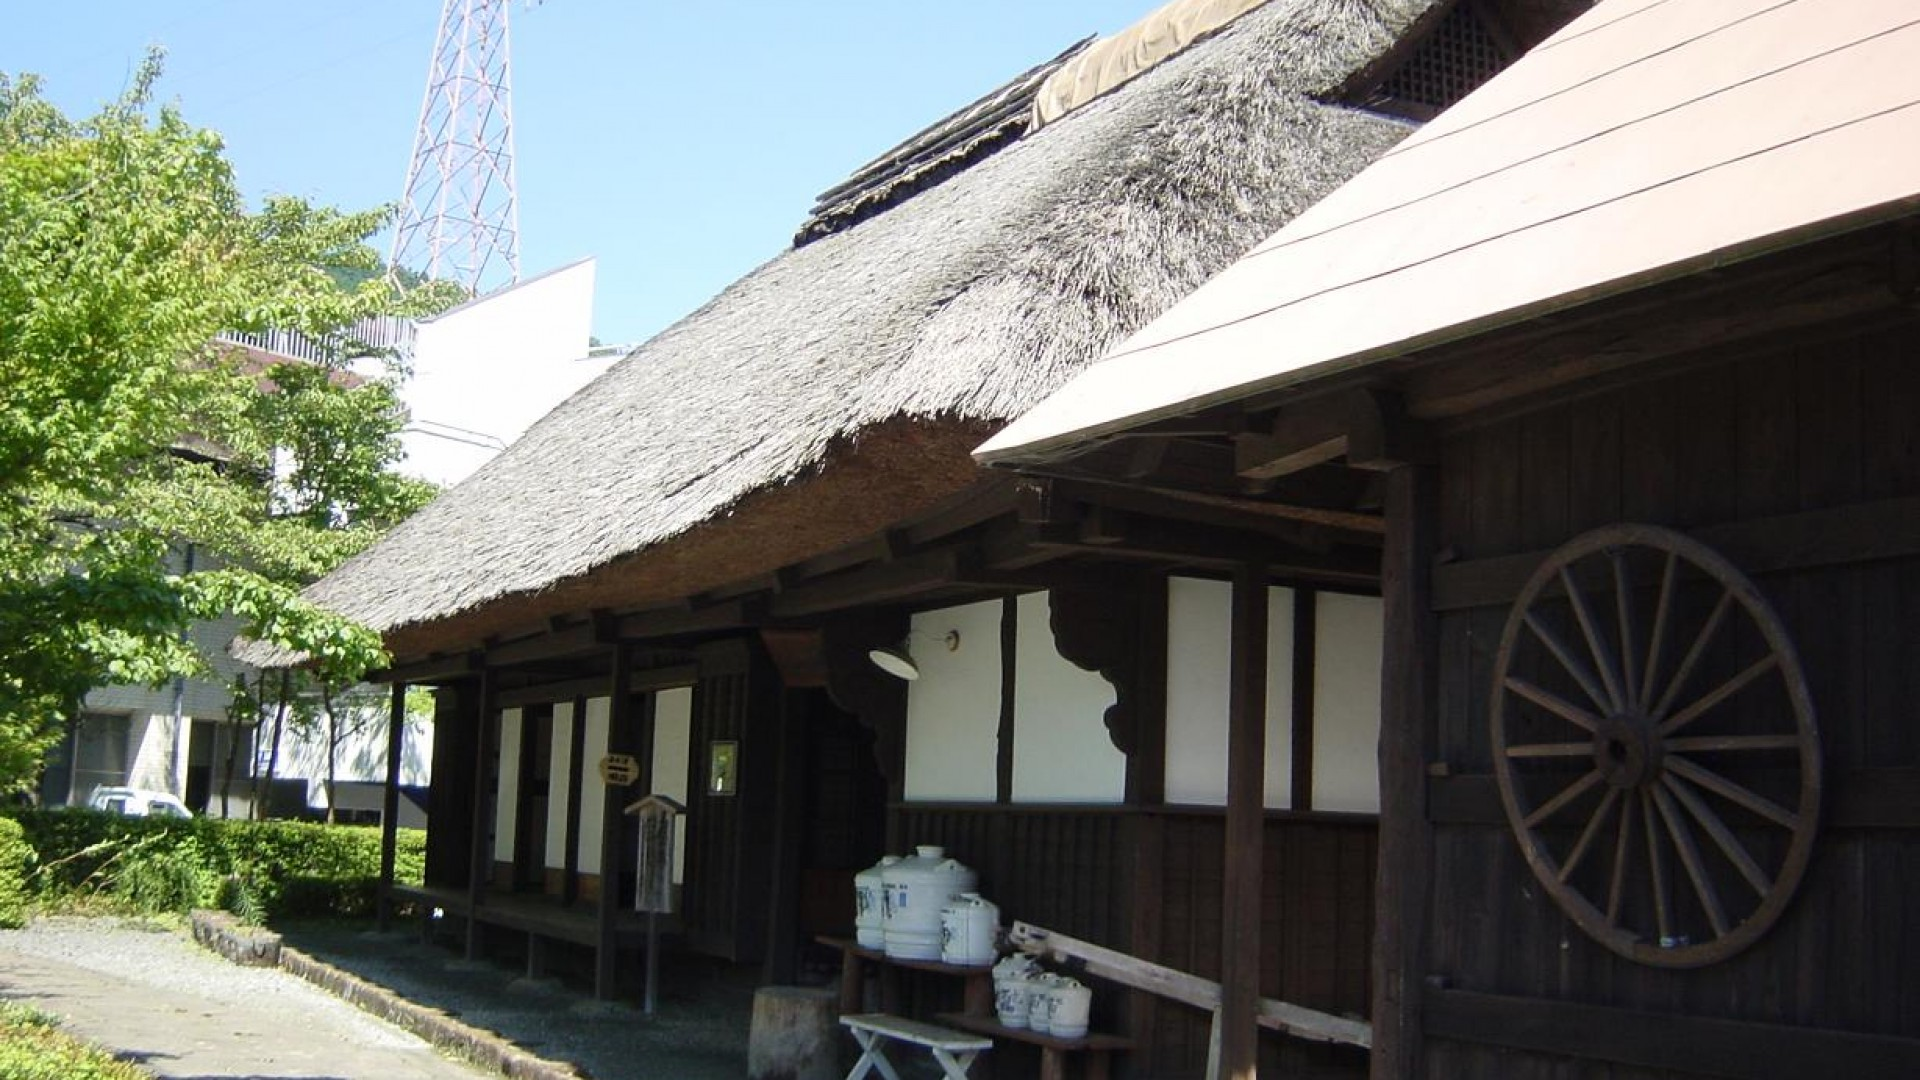 Tanzawa See Gedächtnismuseum Miho No Ie